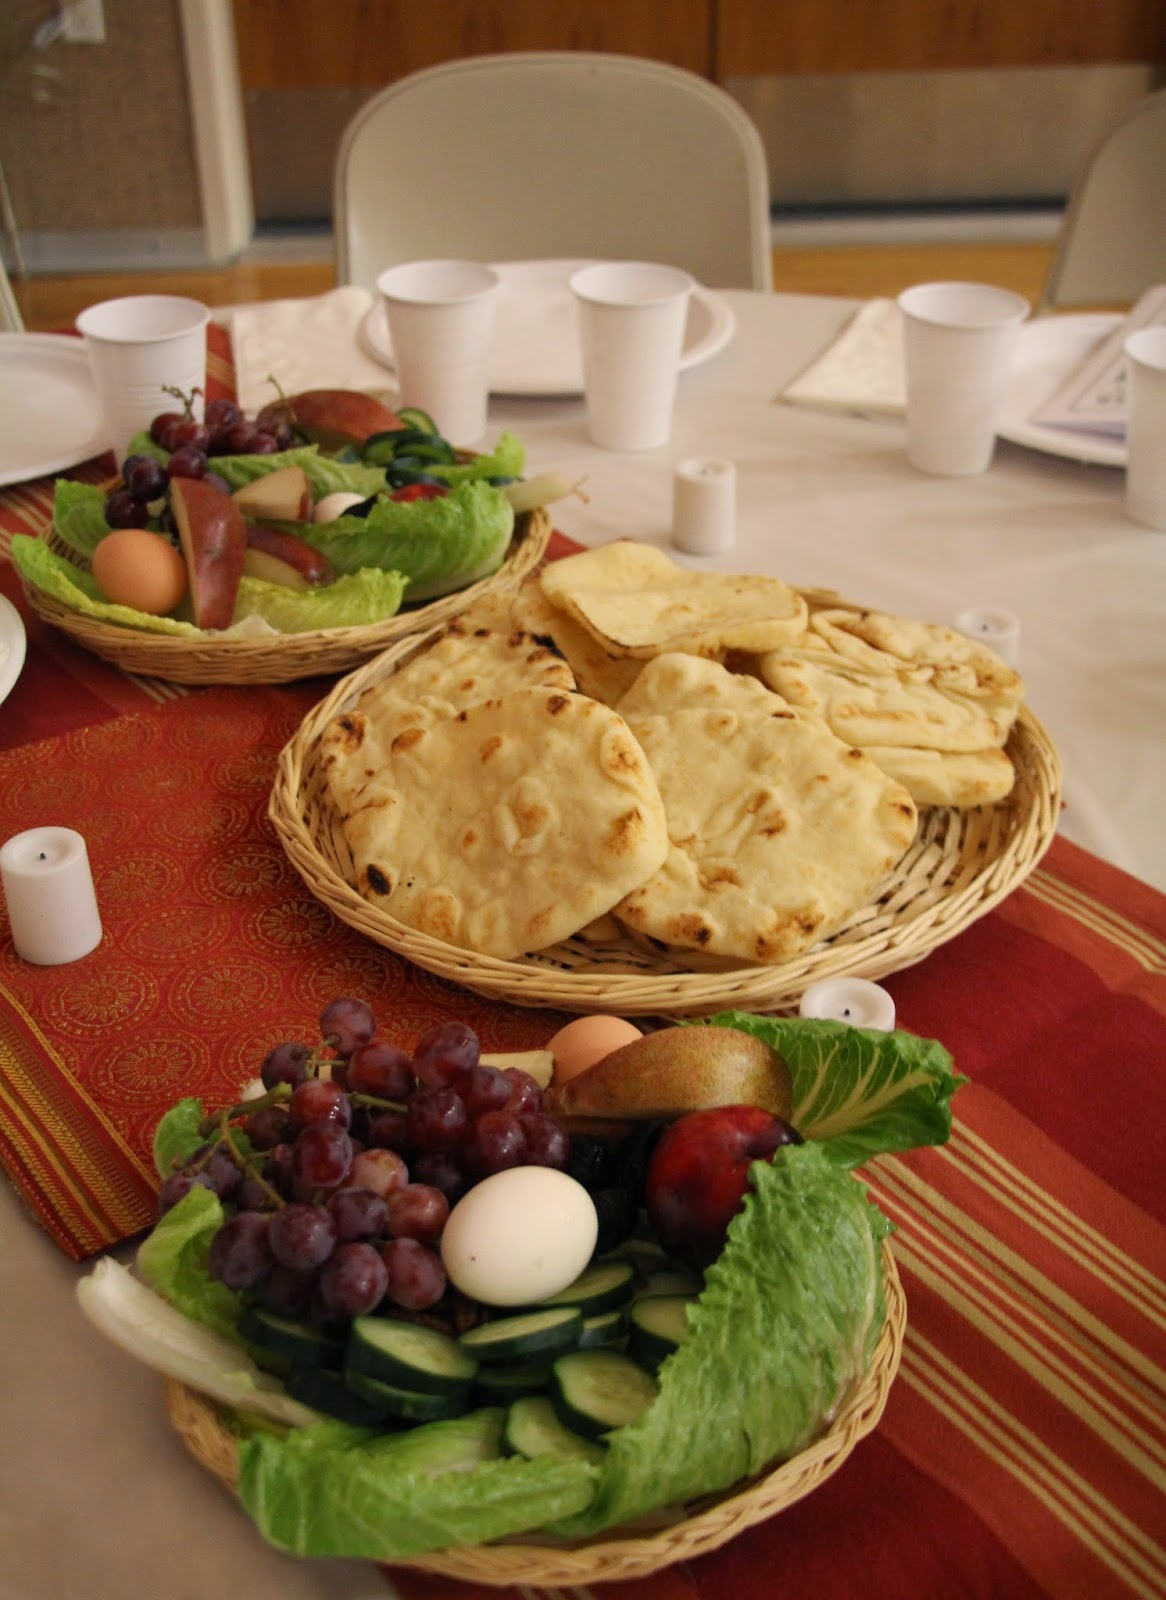 Redeemer of israel triclinium passover feast biblical for Ancient israelite cuisine